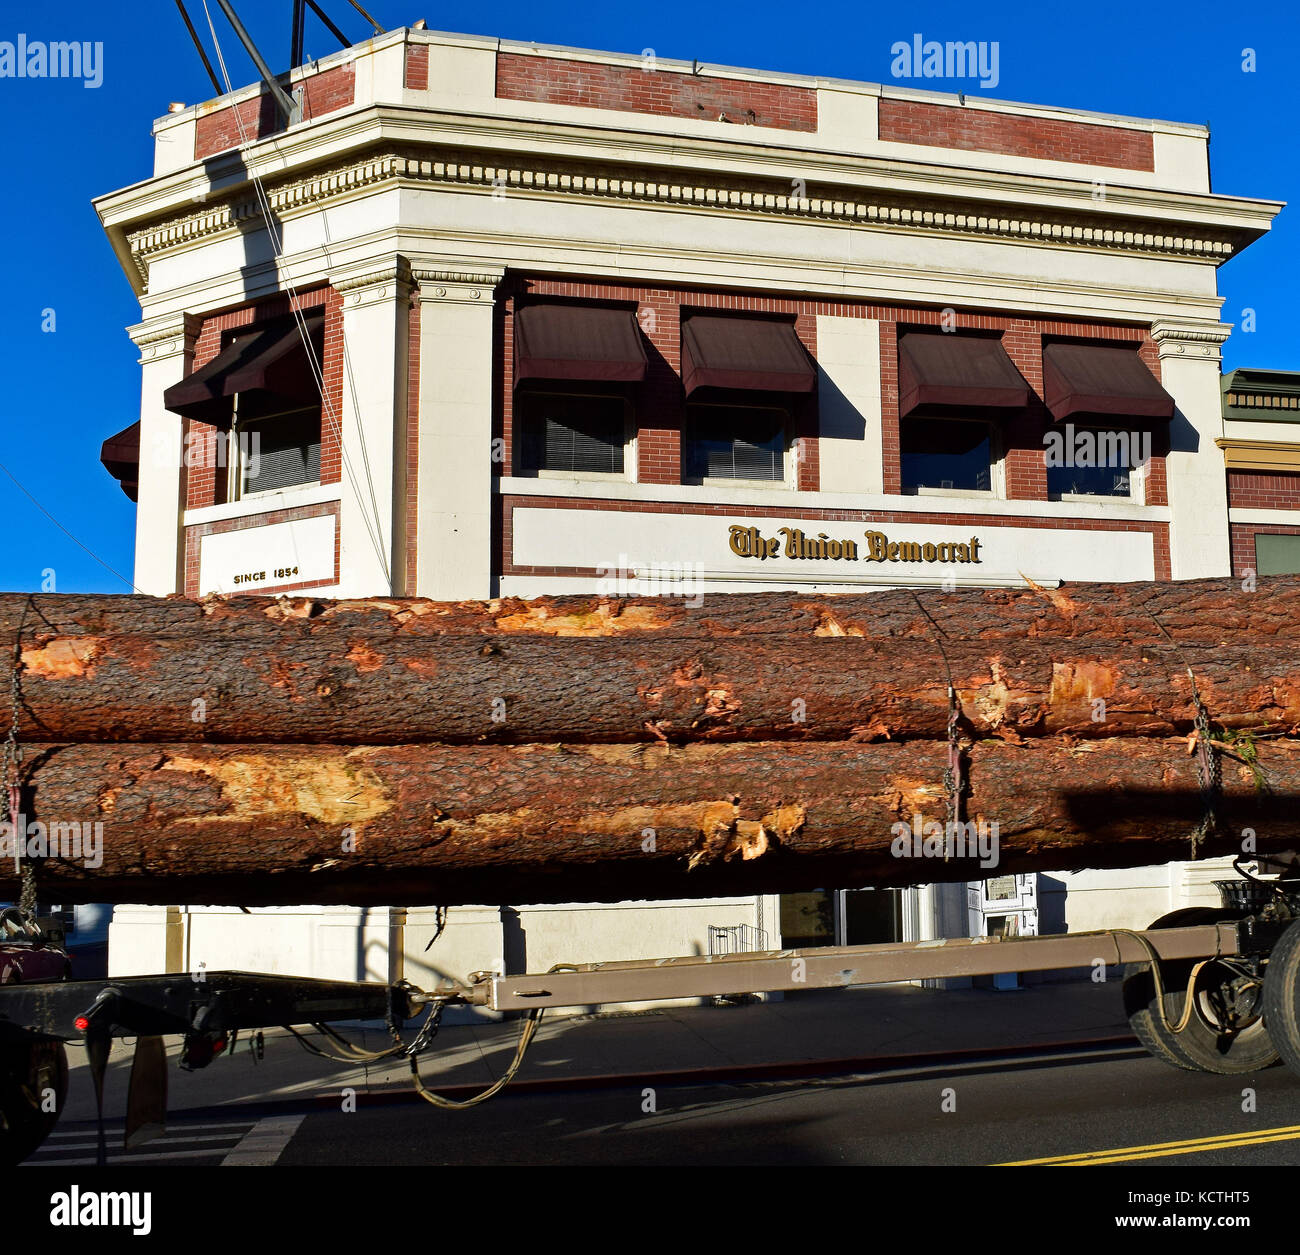 logging truck passes The Union Democrat Newspaper offices. Sonora, California - Stock Image